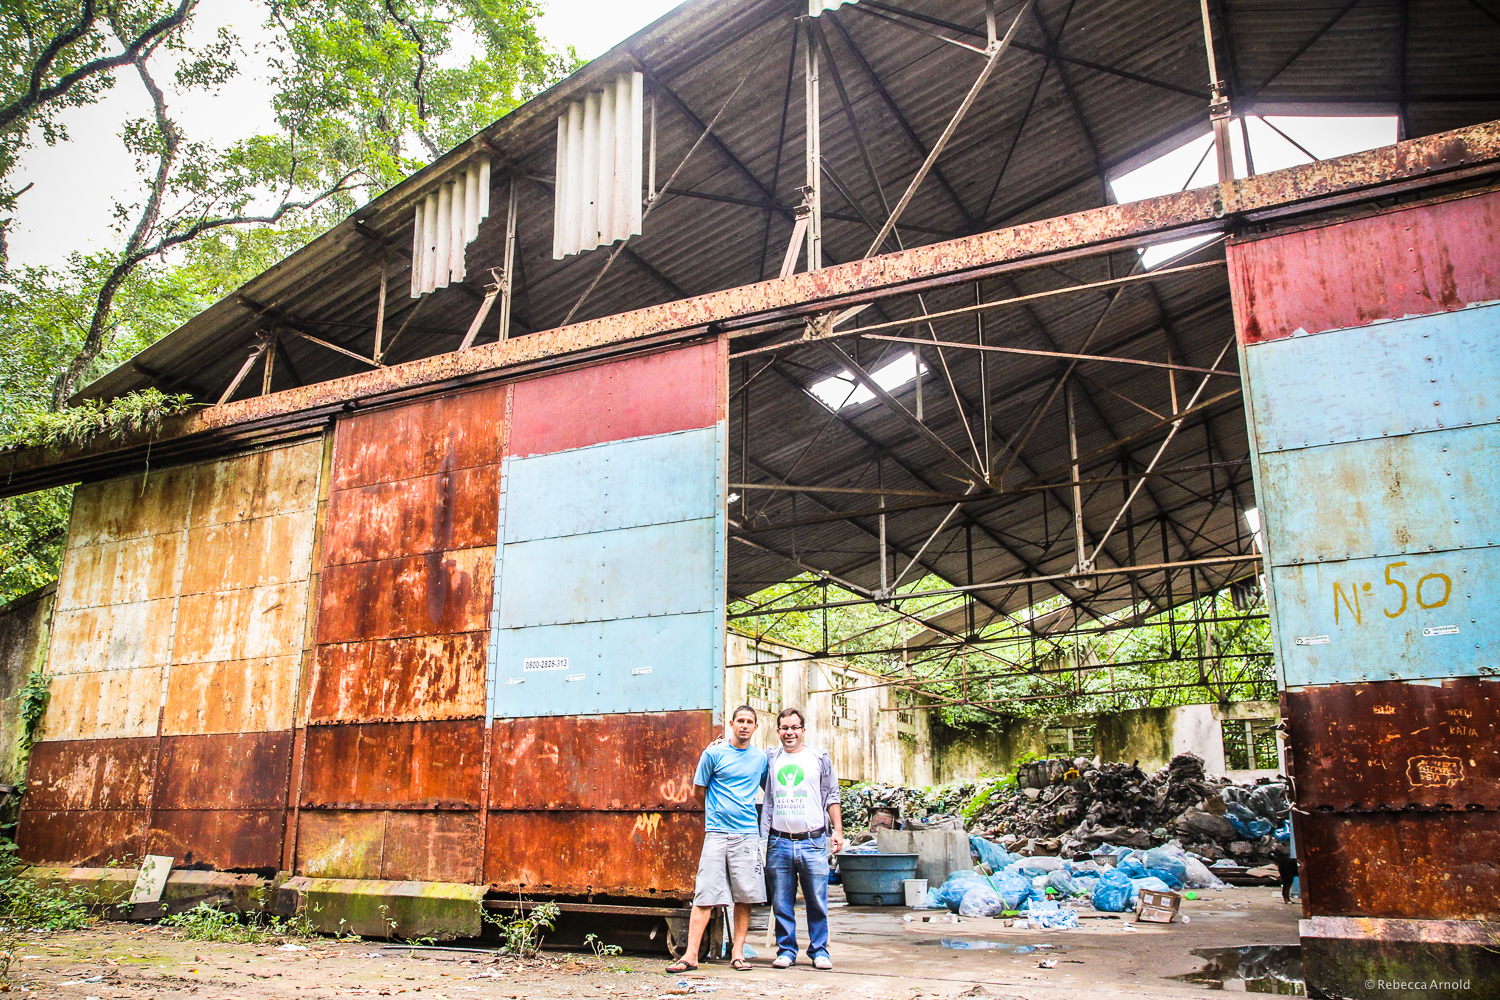 Duque de Caxias, Brazil.  CARE Brazil  supports this small recycling operation in an abandoned airplane hanger.